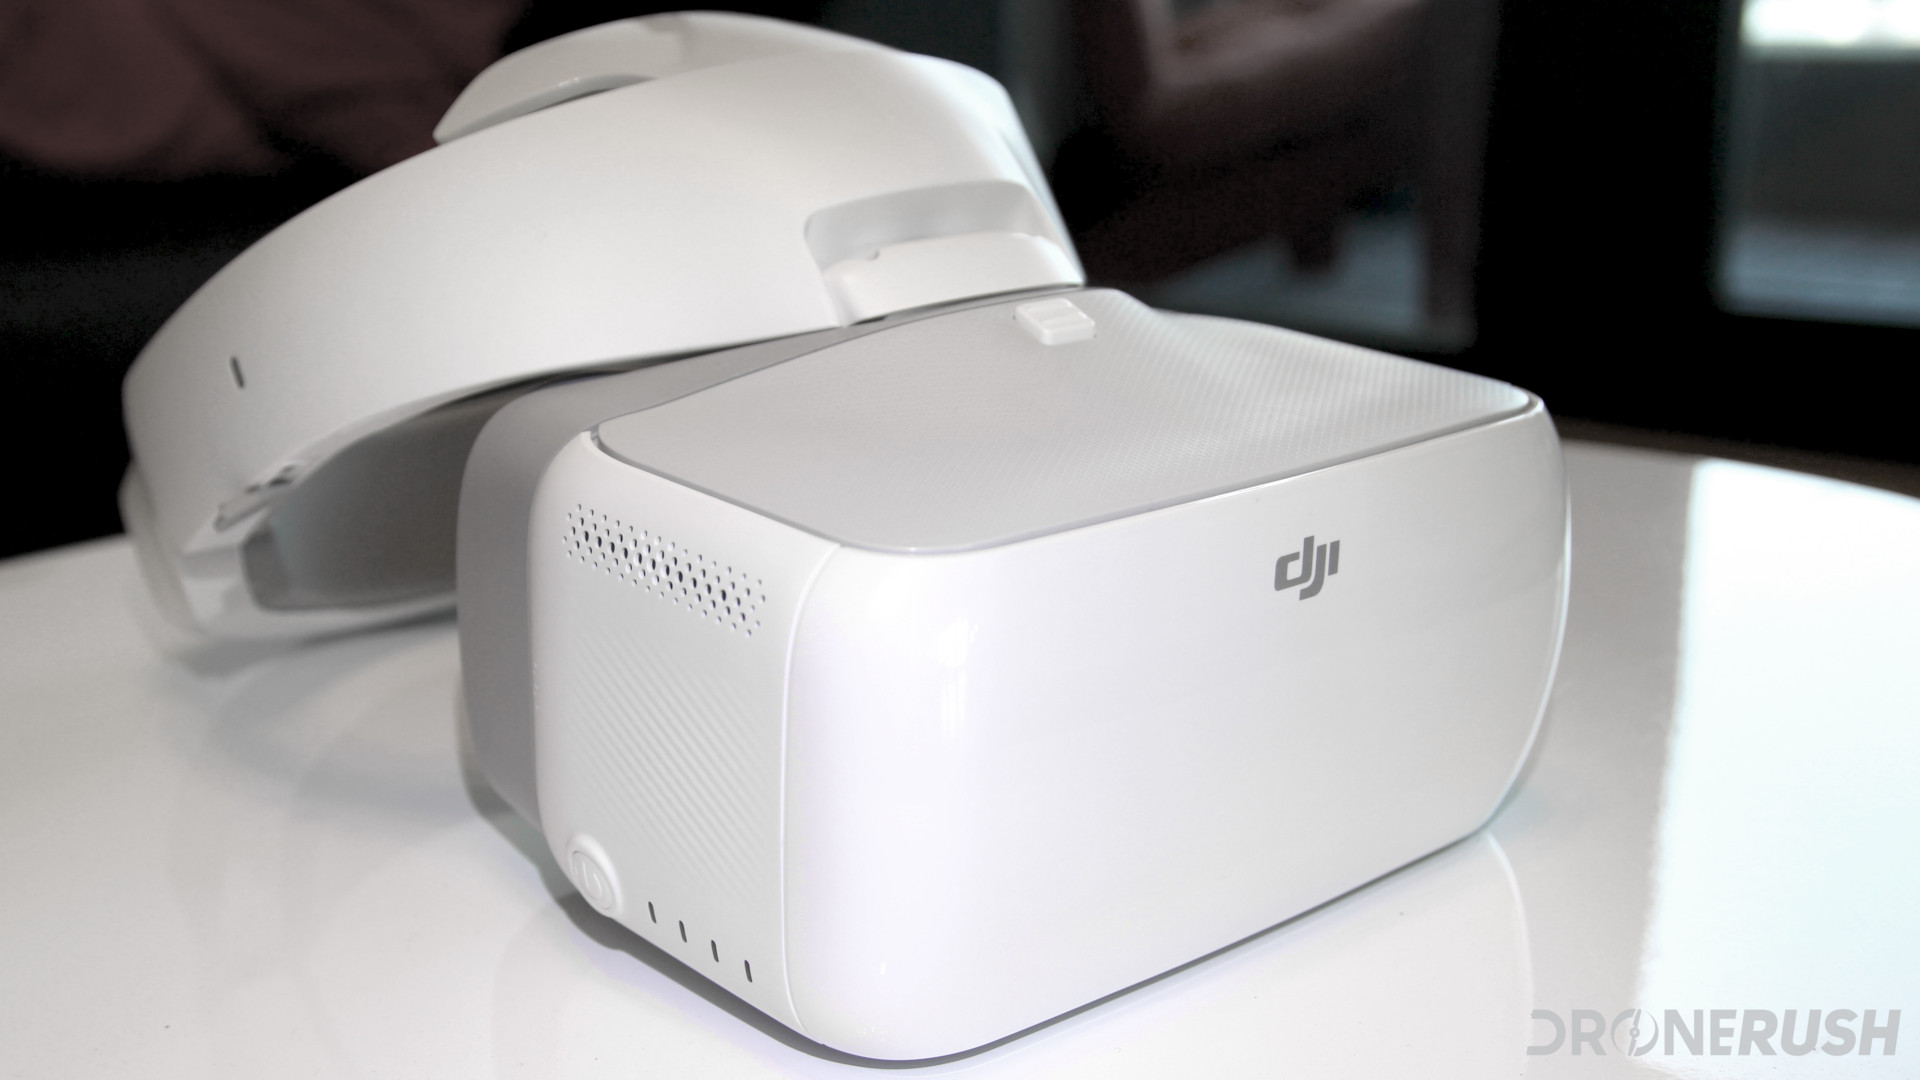 12 reasons to choose the DJI Goggles - DroneRush